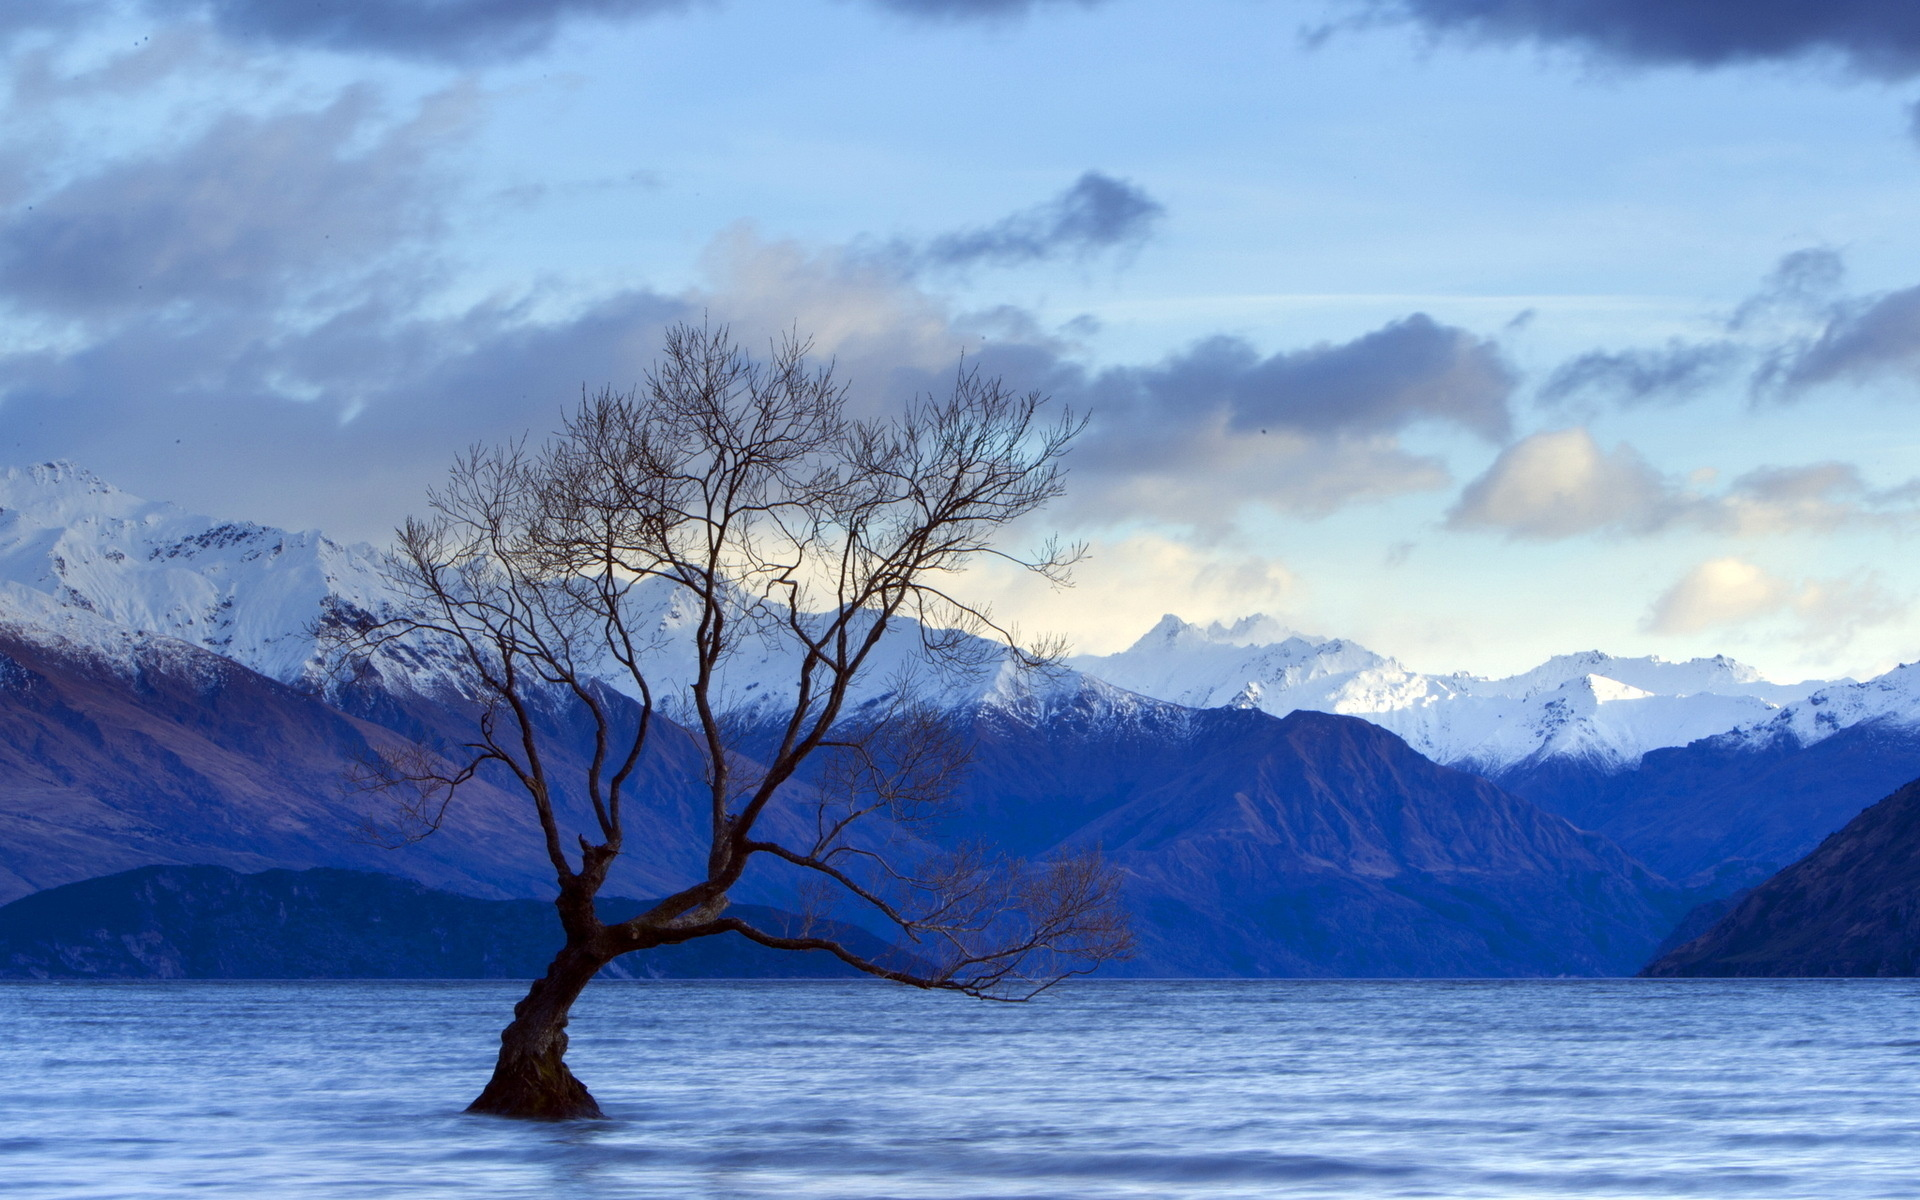 nature landscapes lakes water trees alone flood rivers mountains snow sky clouds sunset sunrise forest scenic view